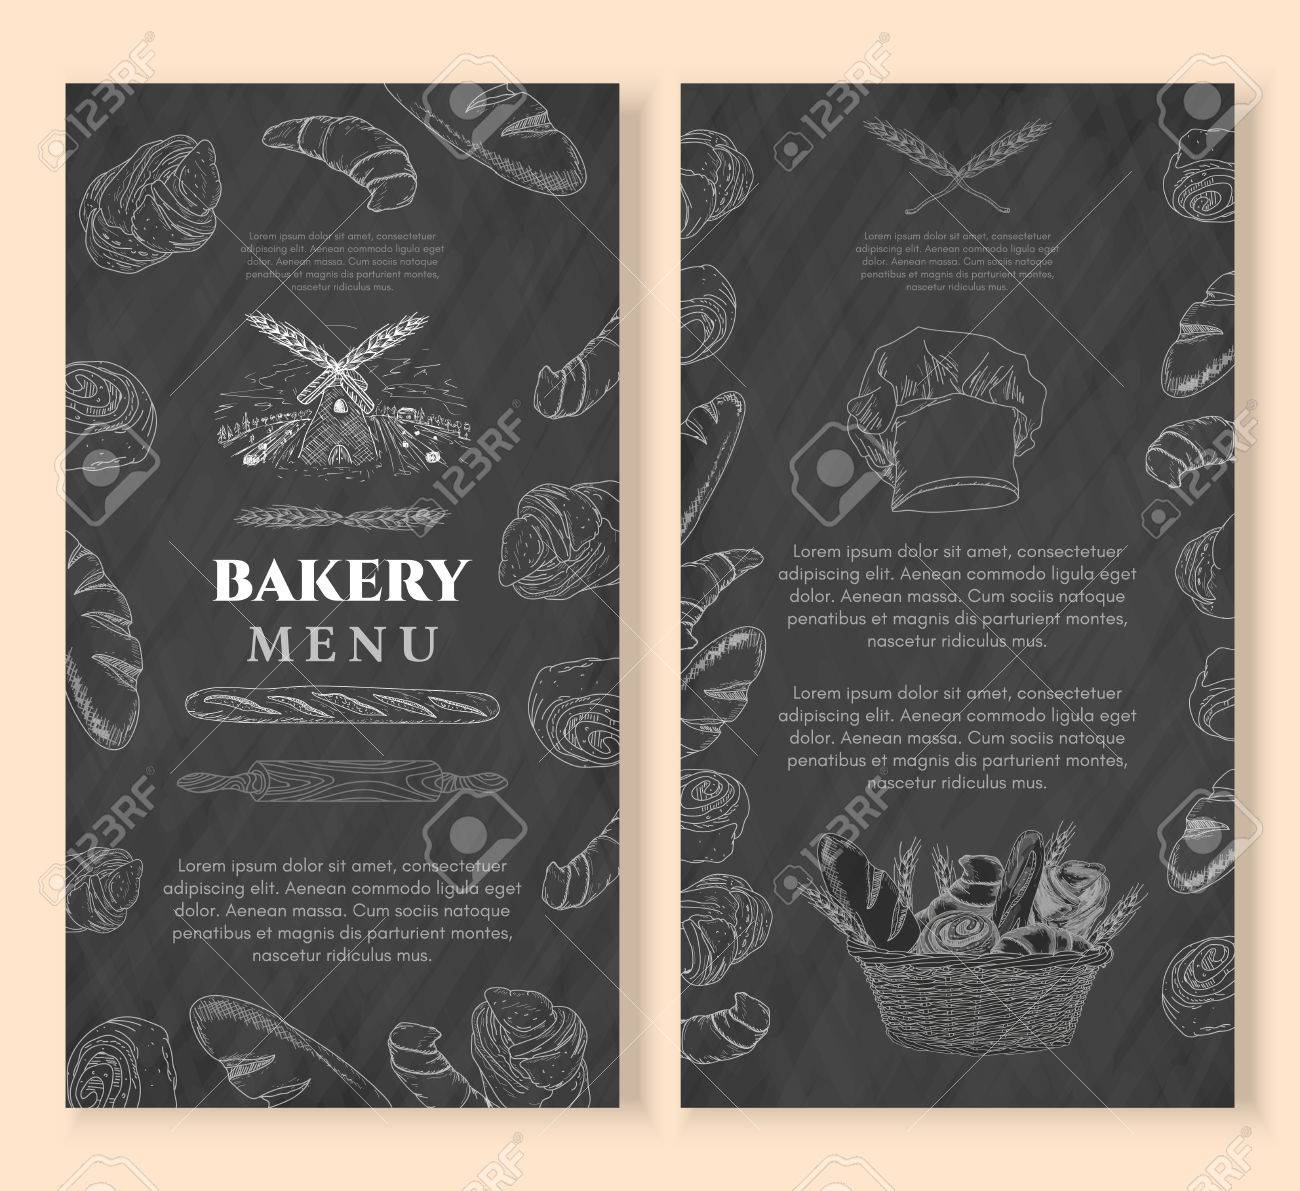 Bakery Design Template Chalkboard Vintage Style. Baking Products ...